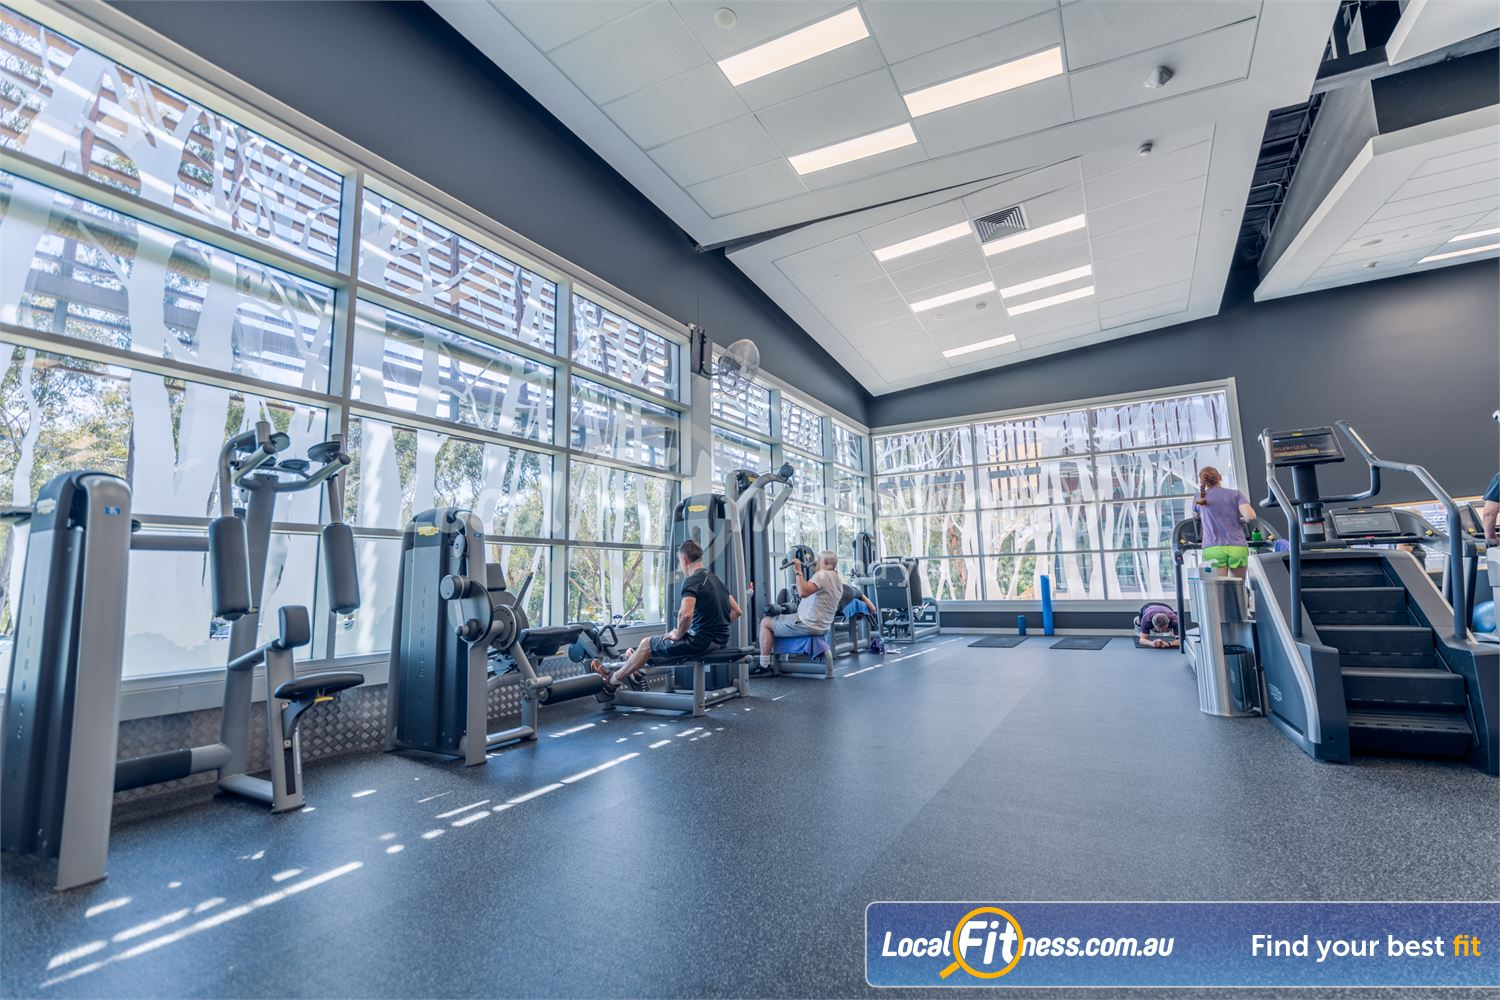 Eltham Leisure Centre Eltham Our 24/7 Eltham gym includes a fully equipped with Technogym pin-loading equipment.